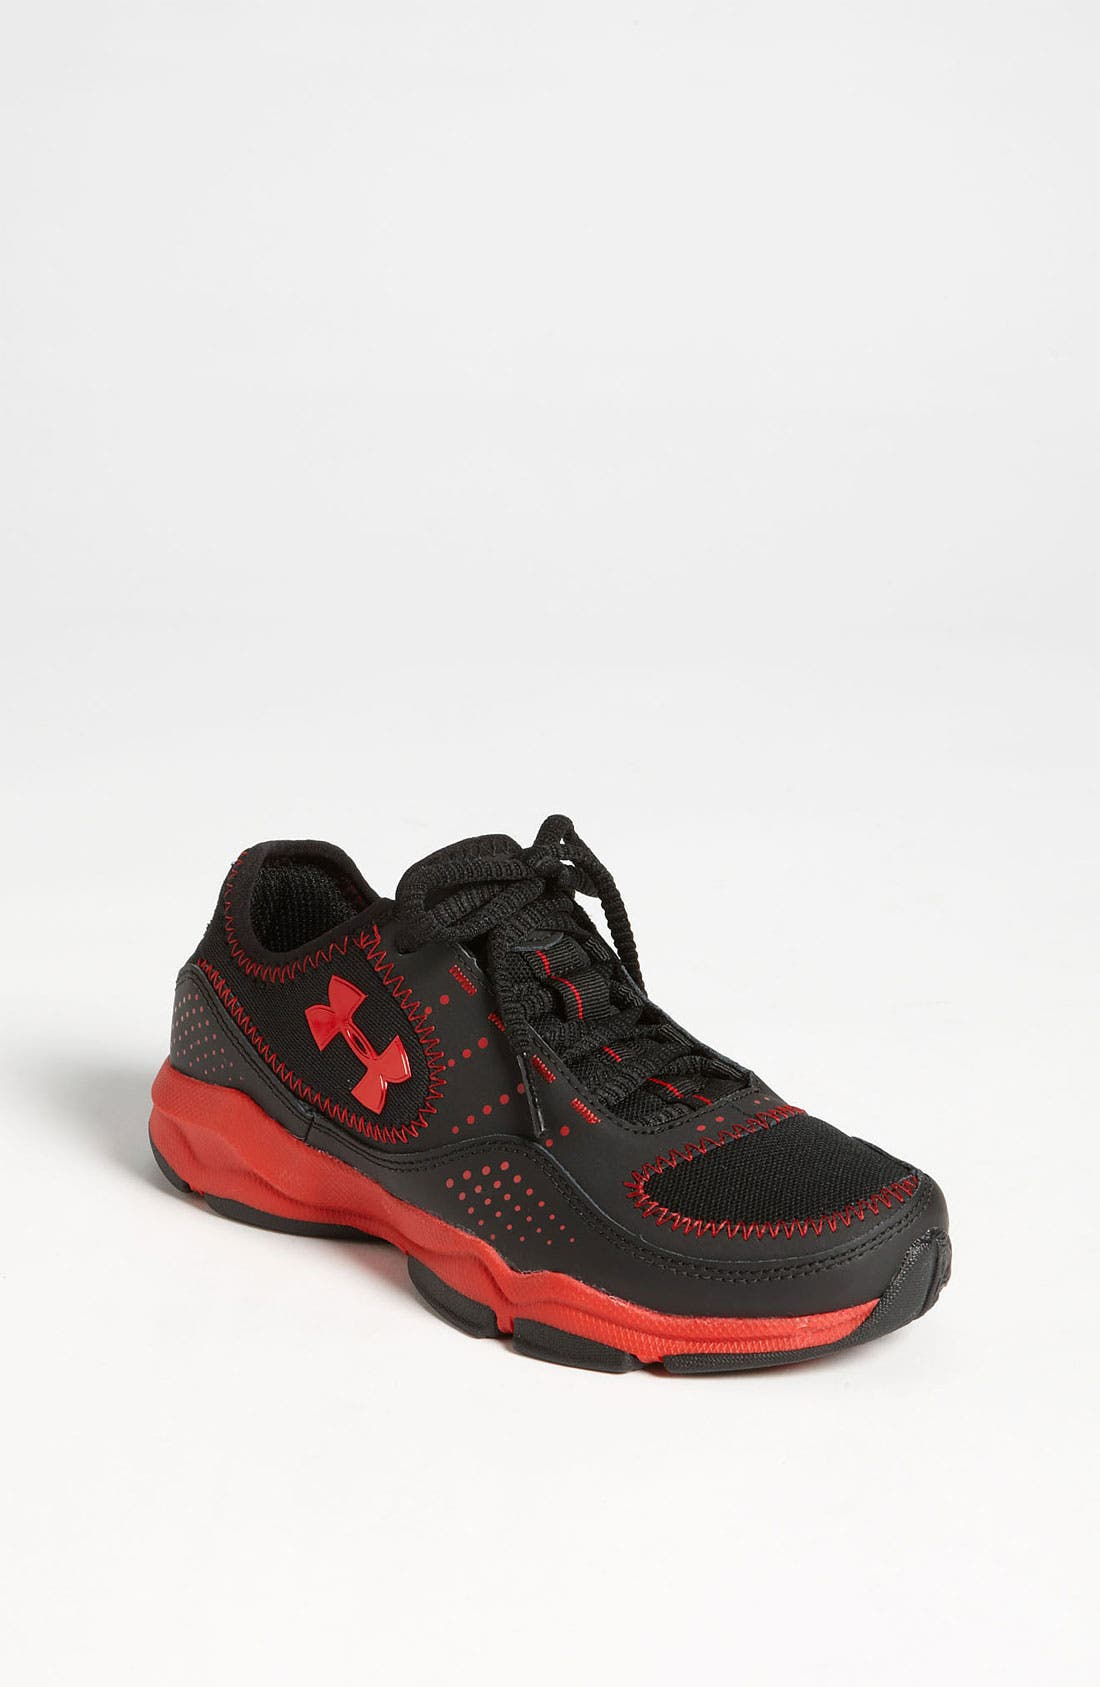 Main Image - Under Armour 'Defend' Sneaker (Toddler, Little Kid & Big Kid)